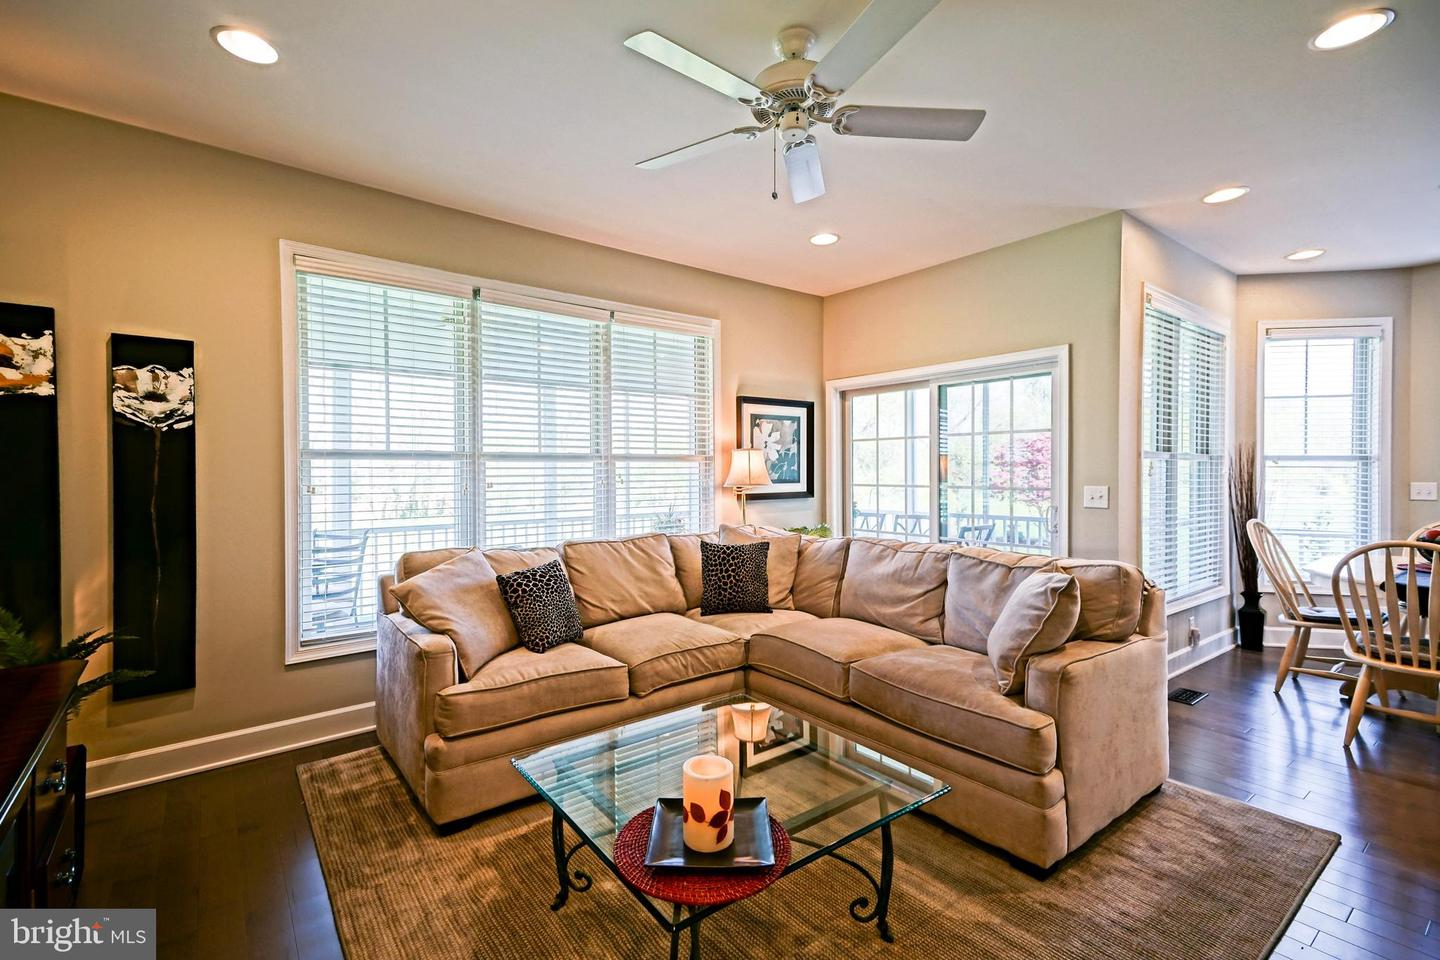 DESU139128-301667381385-2019-08-05-10-43-55 35222 Overfalls Dr N | Lewes, DE Real Estate For Sale | MLS# Desu139128  - Lee Ann Group